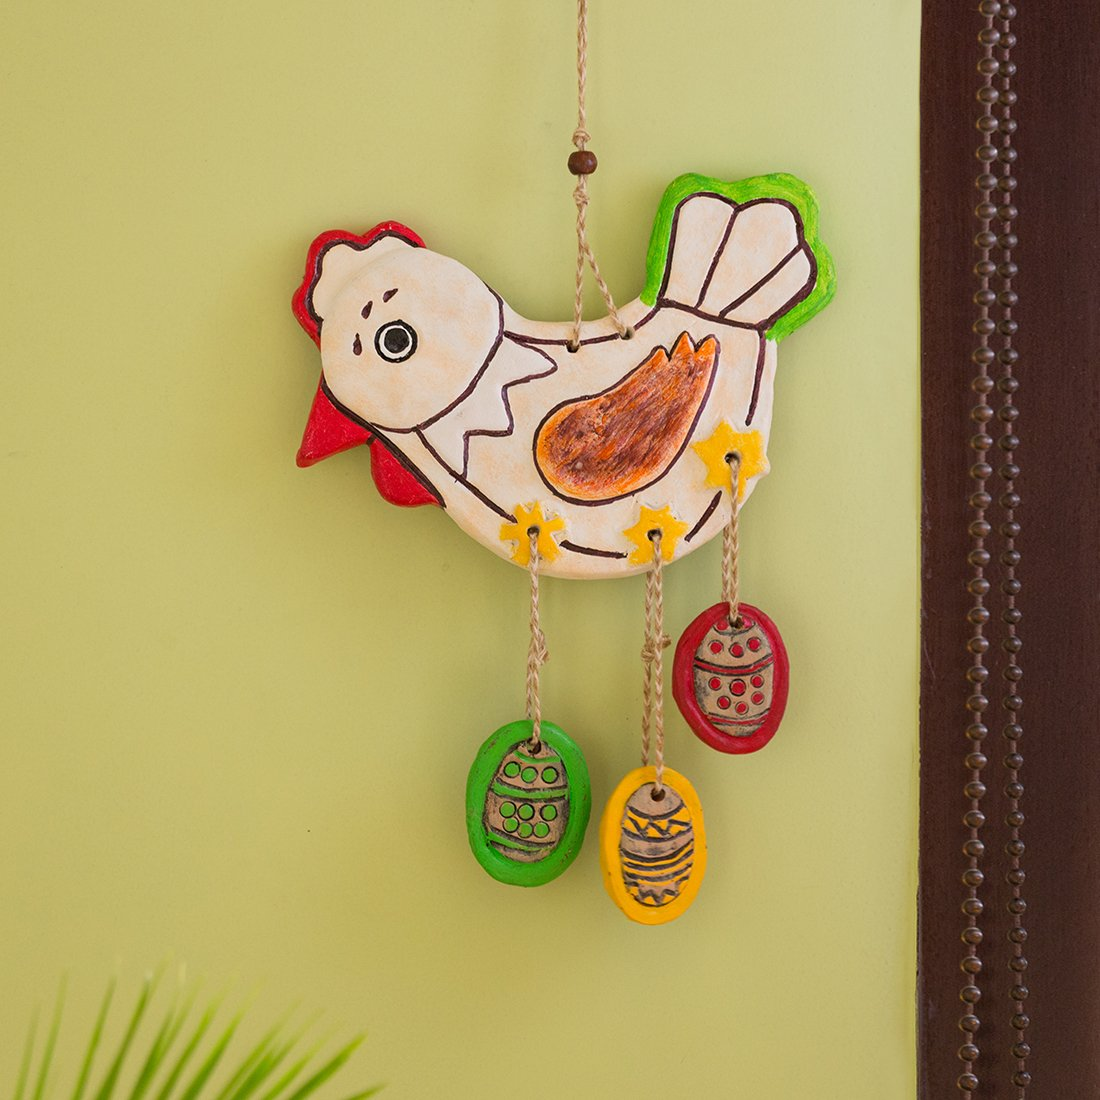 Moorni Caring Hen Handmade & Hand-Painted Garden Decorative Wall Hanging In Terracotta